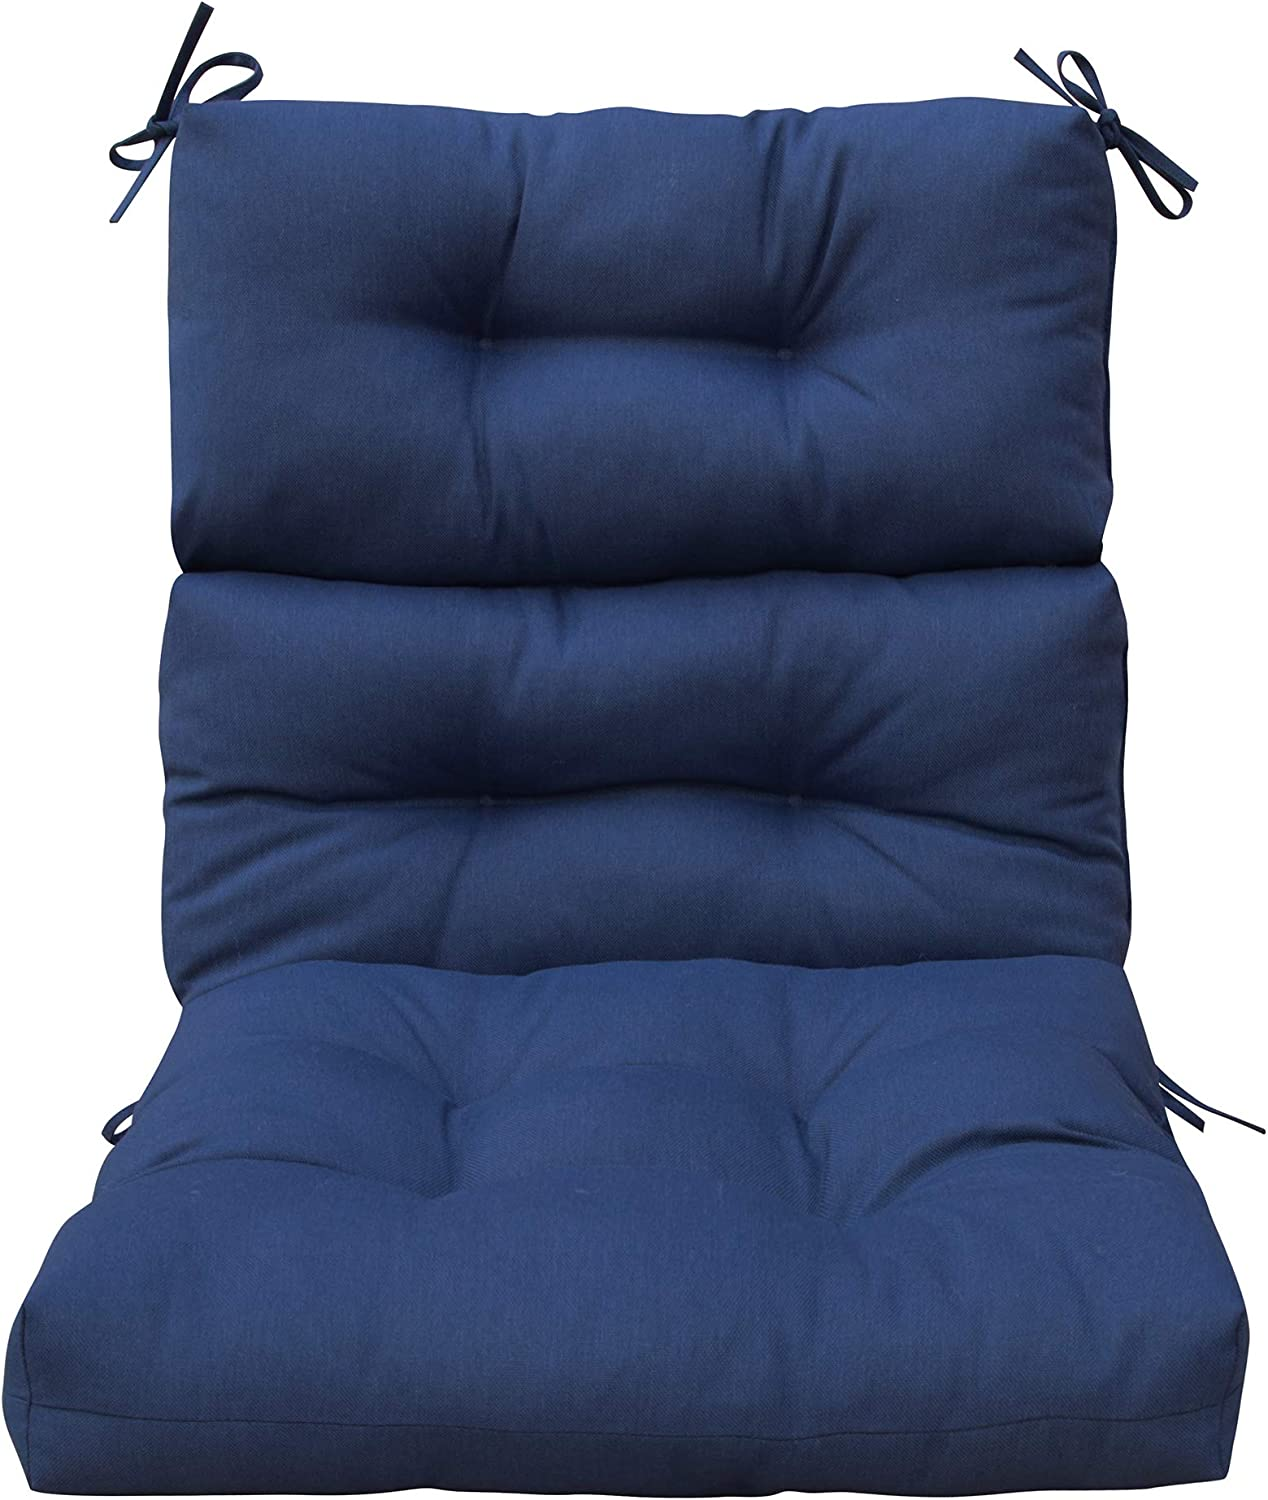 BOSSIMA Outdoor Patio High Back Chair Cushions Tufted Square Corner (Navy Blue)